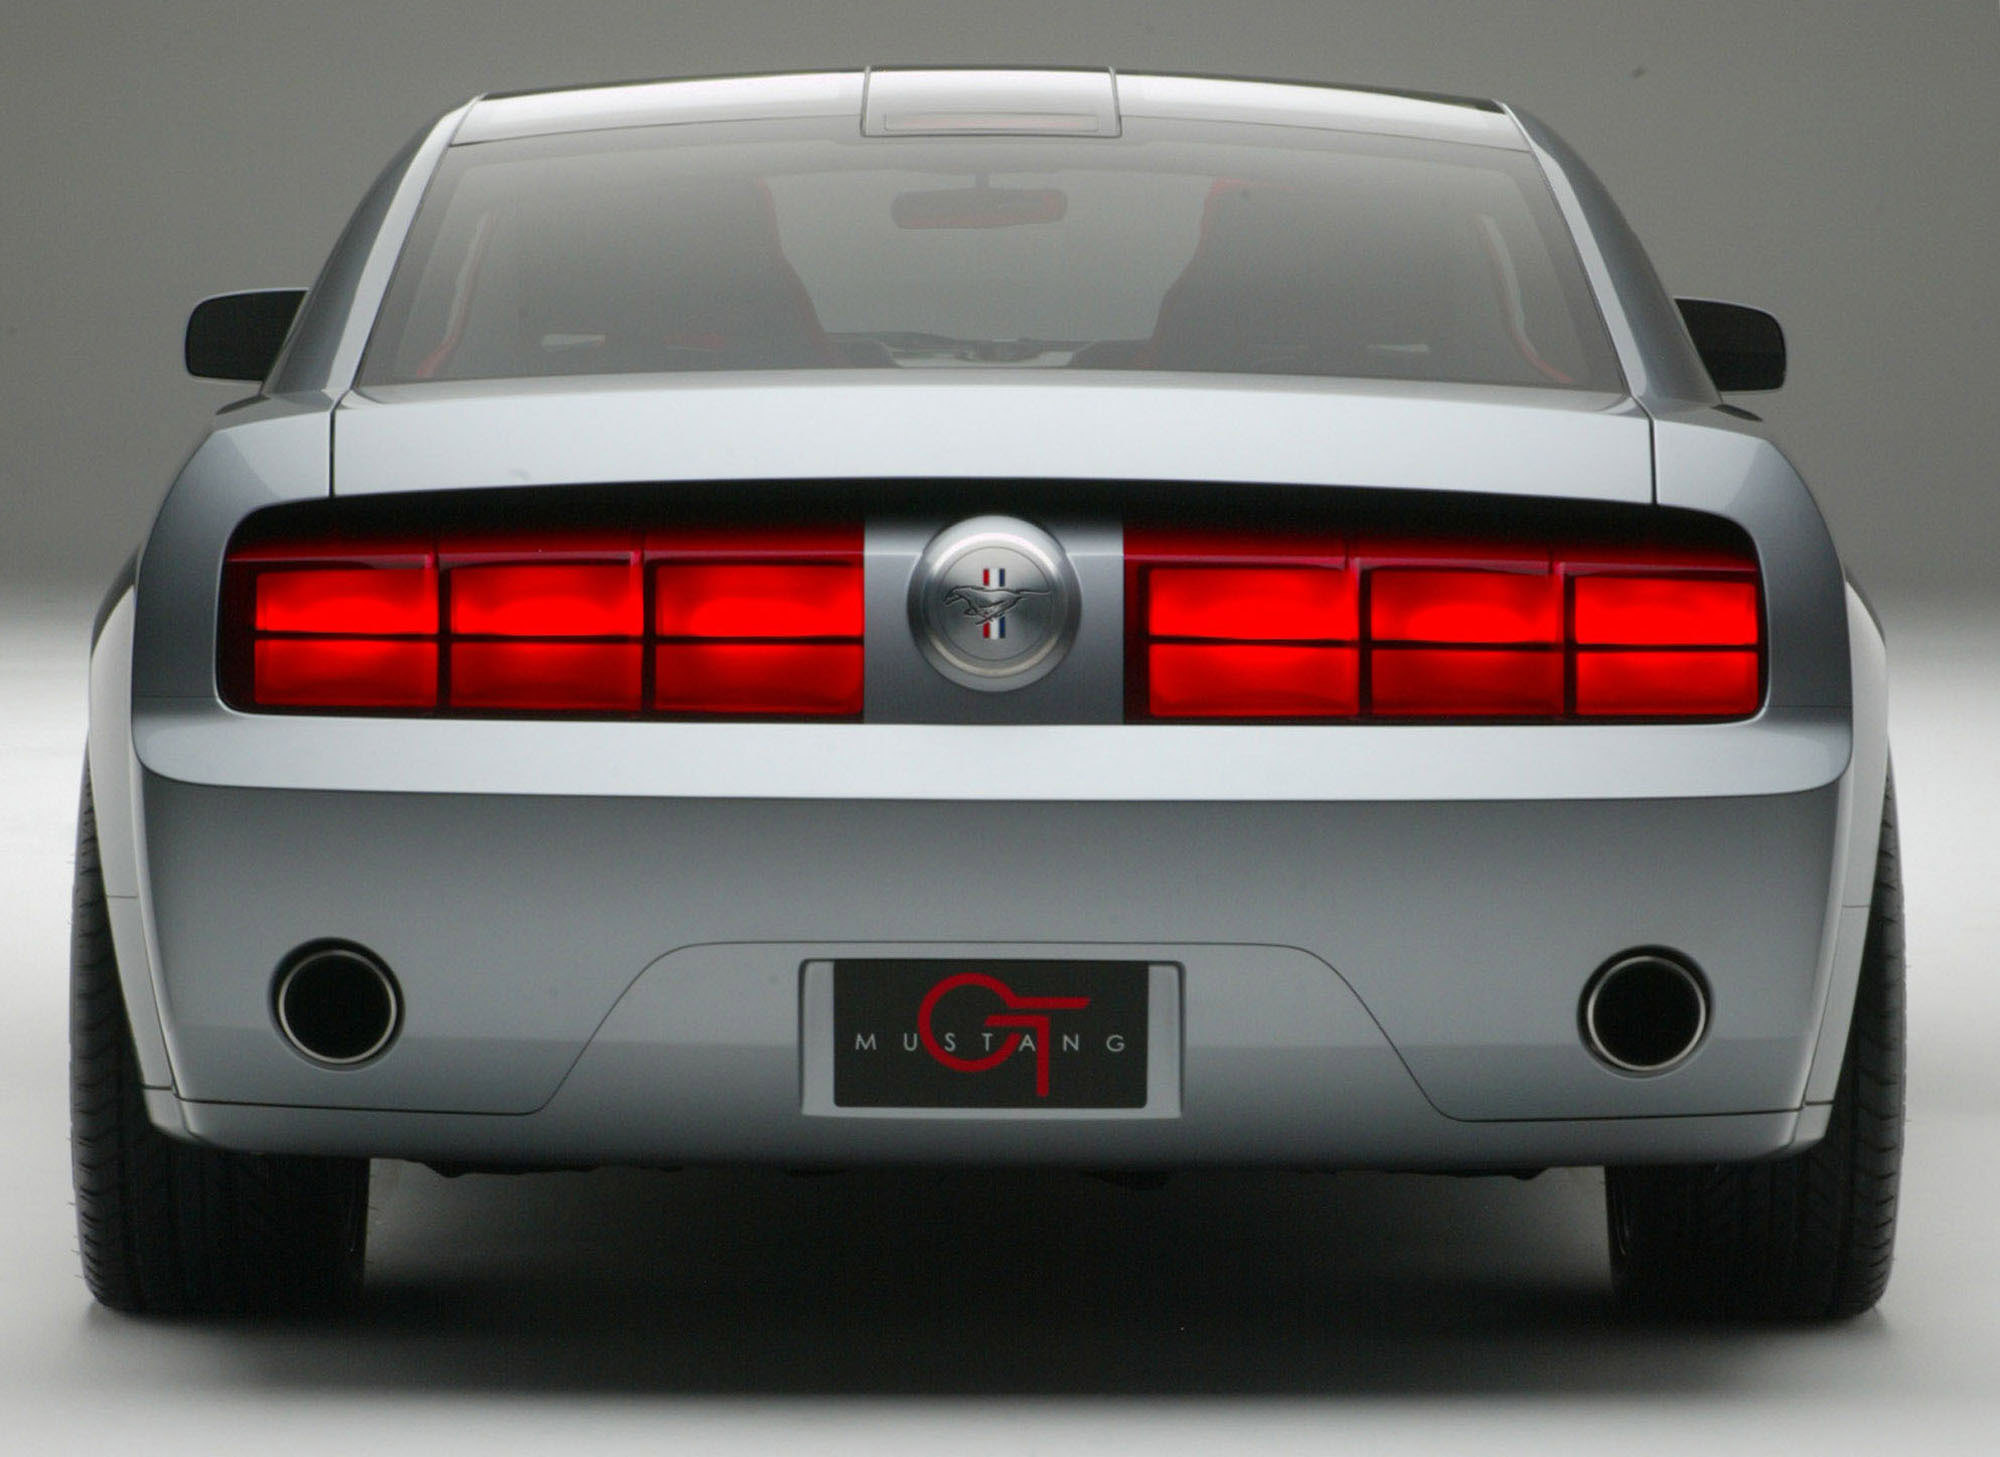 2003 Ford Mustang GT Convertible Concept photo - 2